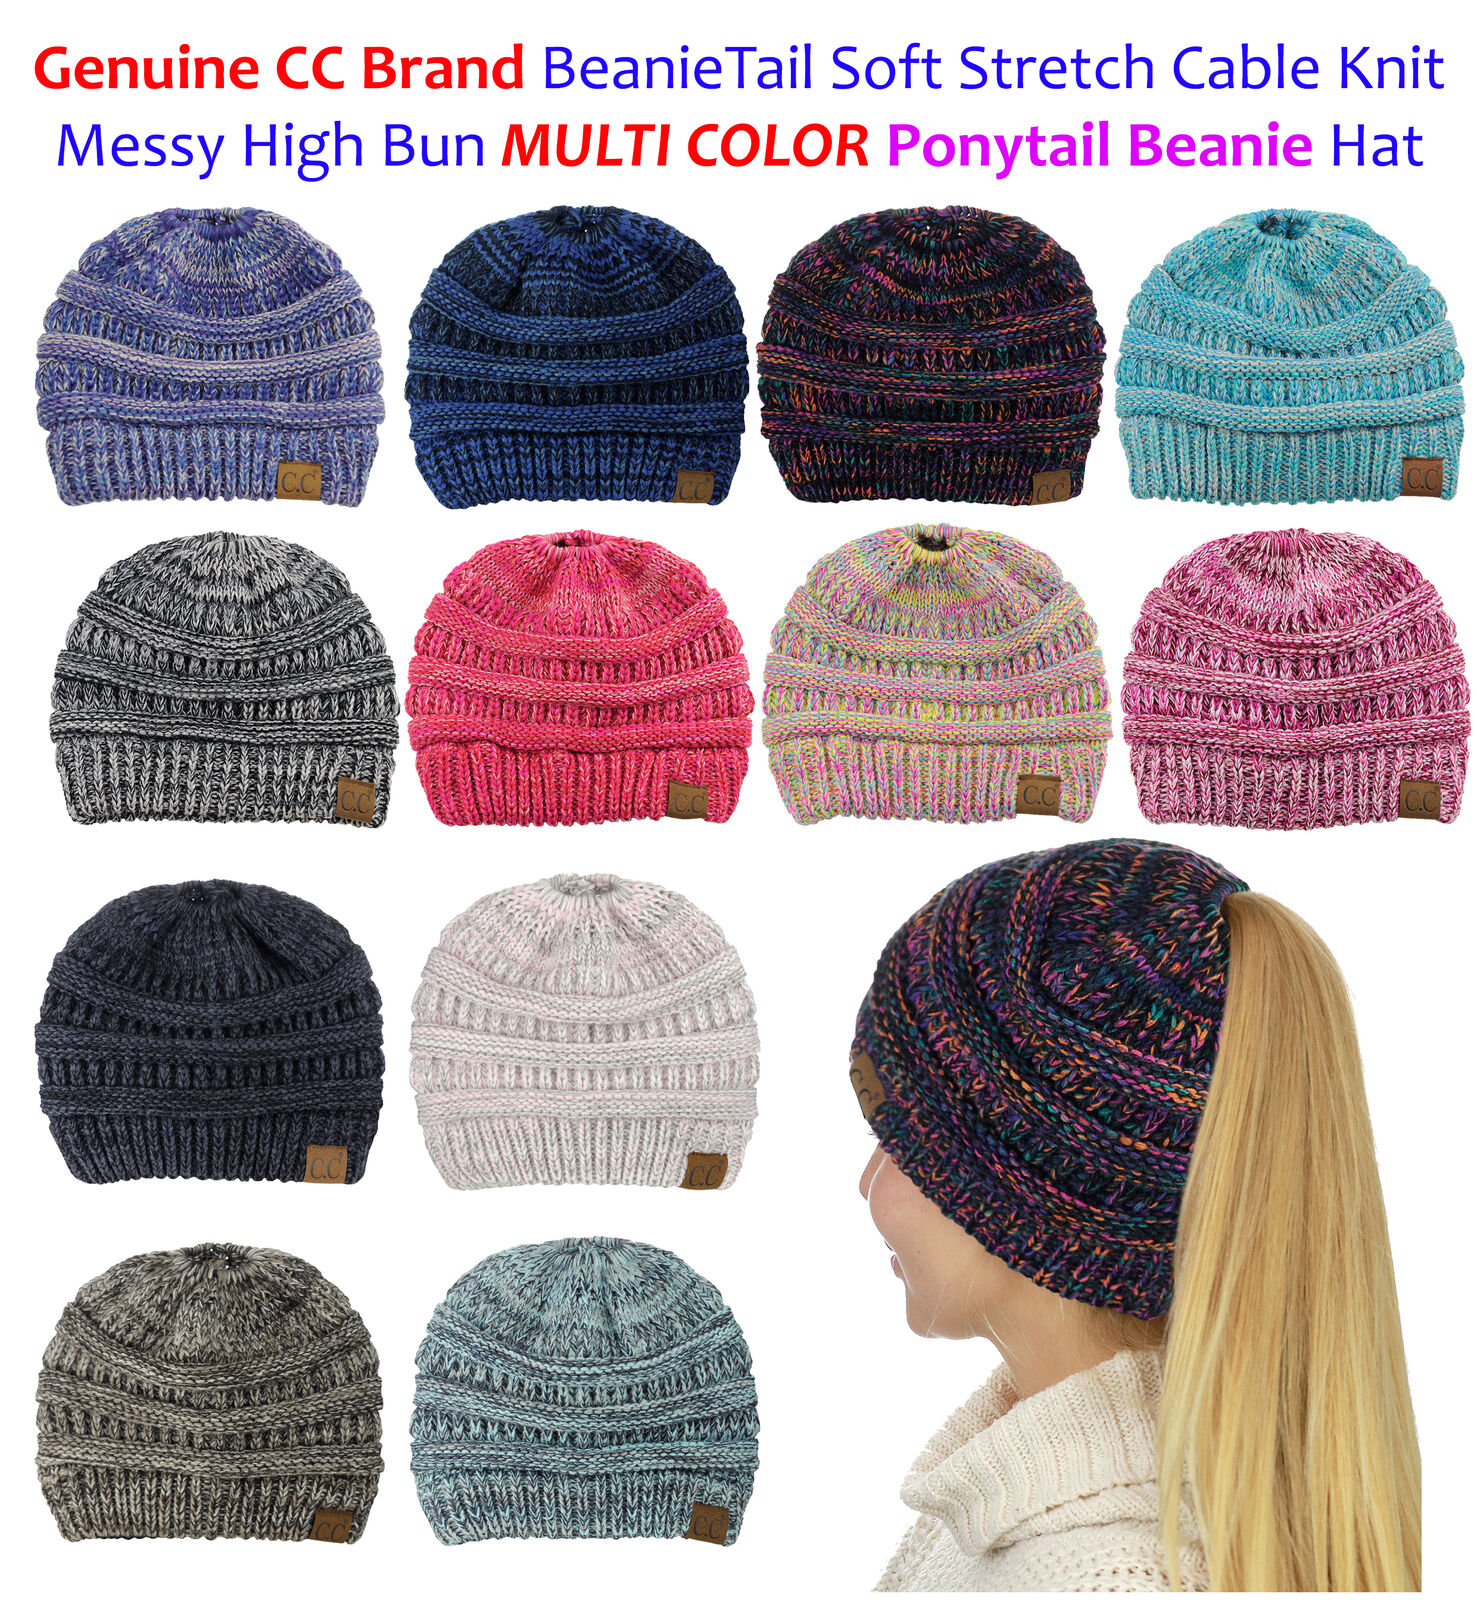 72d666f5574 Beanietail Soft Stretch Cable Knit Messy High Bun Ponytail Beanie Hat 3  Tone for sale online